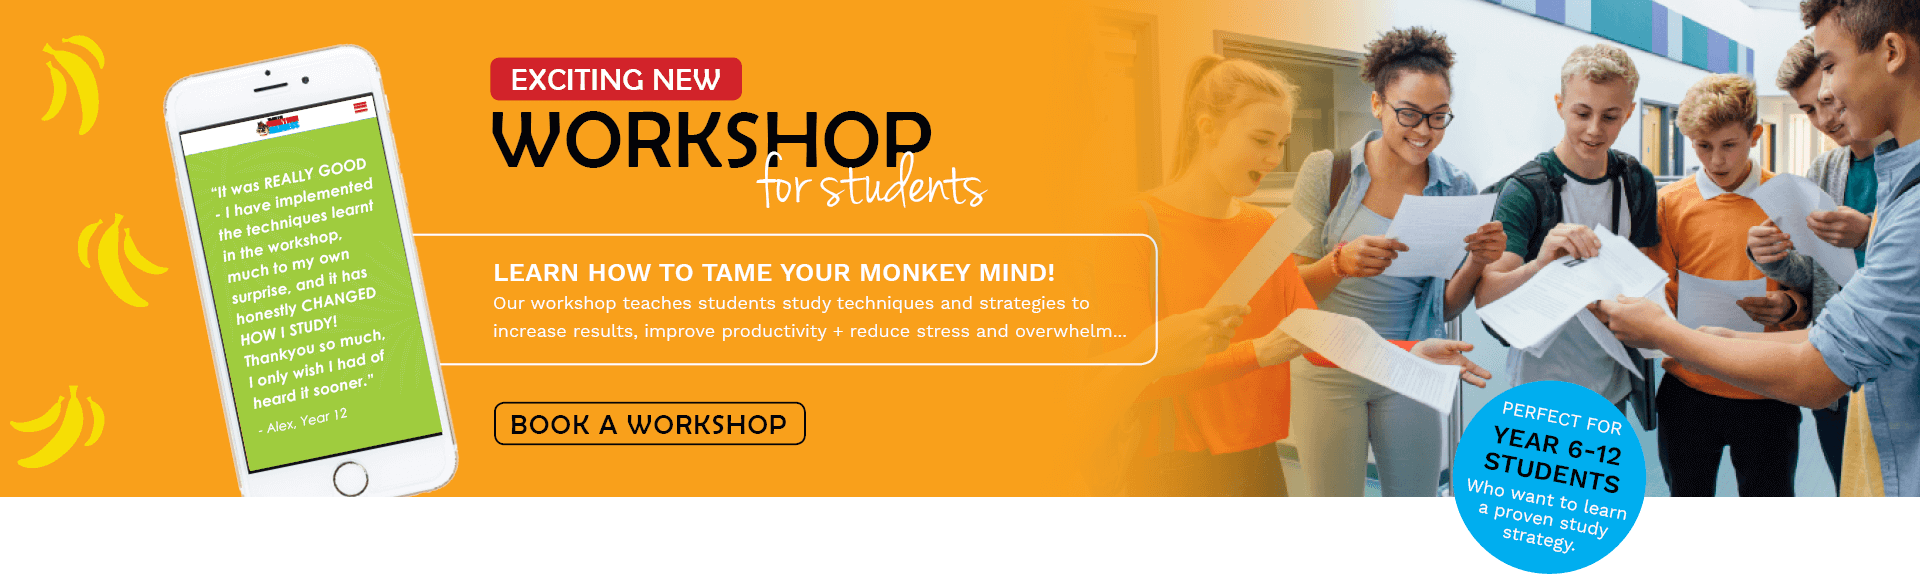 Book a Workshop